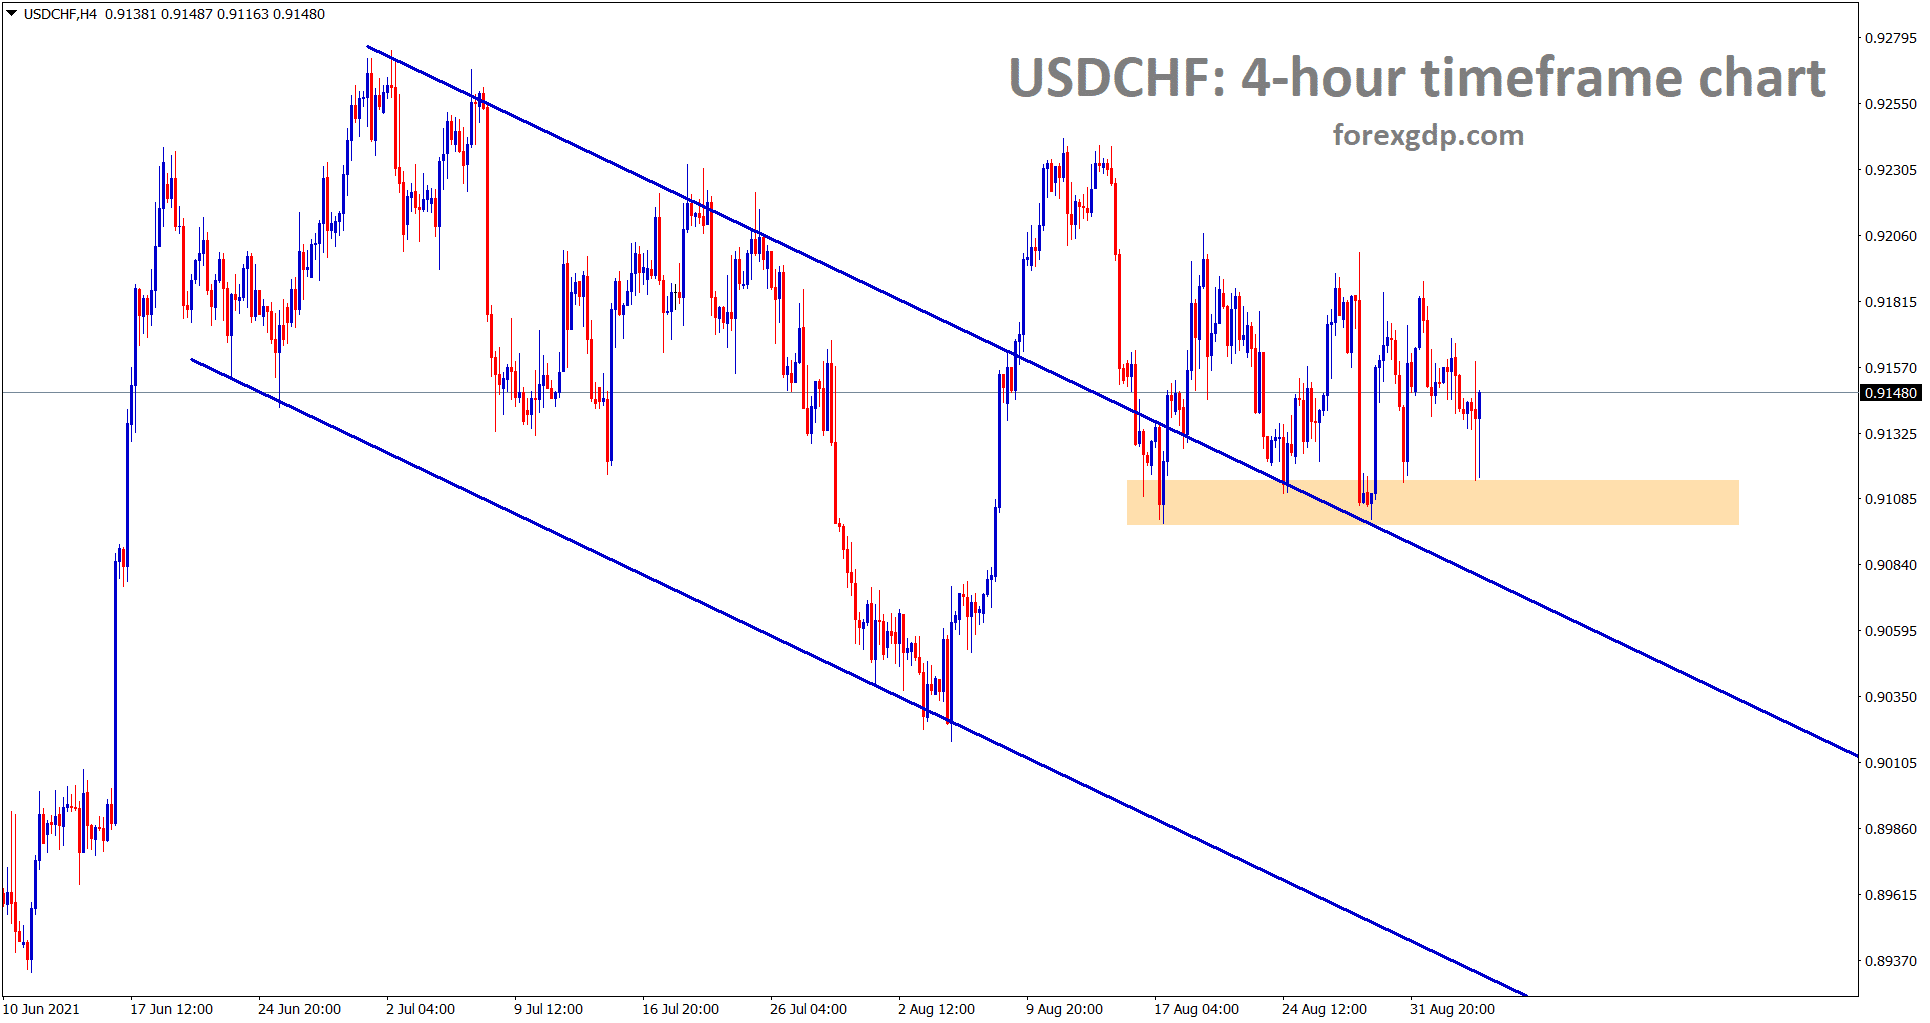 USDCHF is consolidating after breaking the top of the descending channel